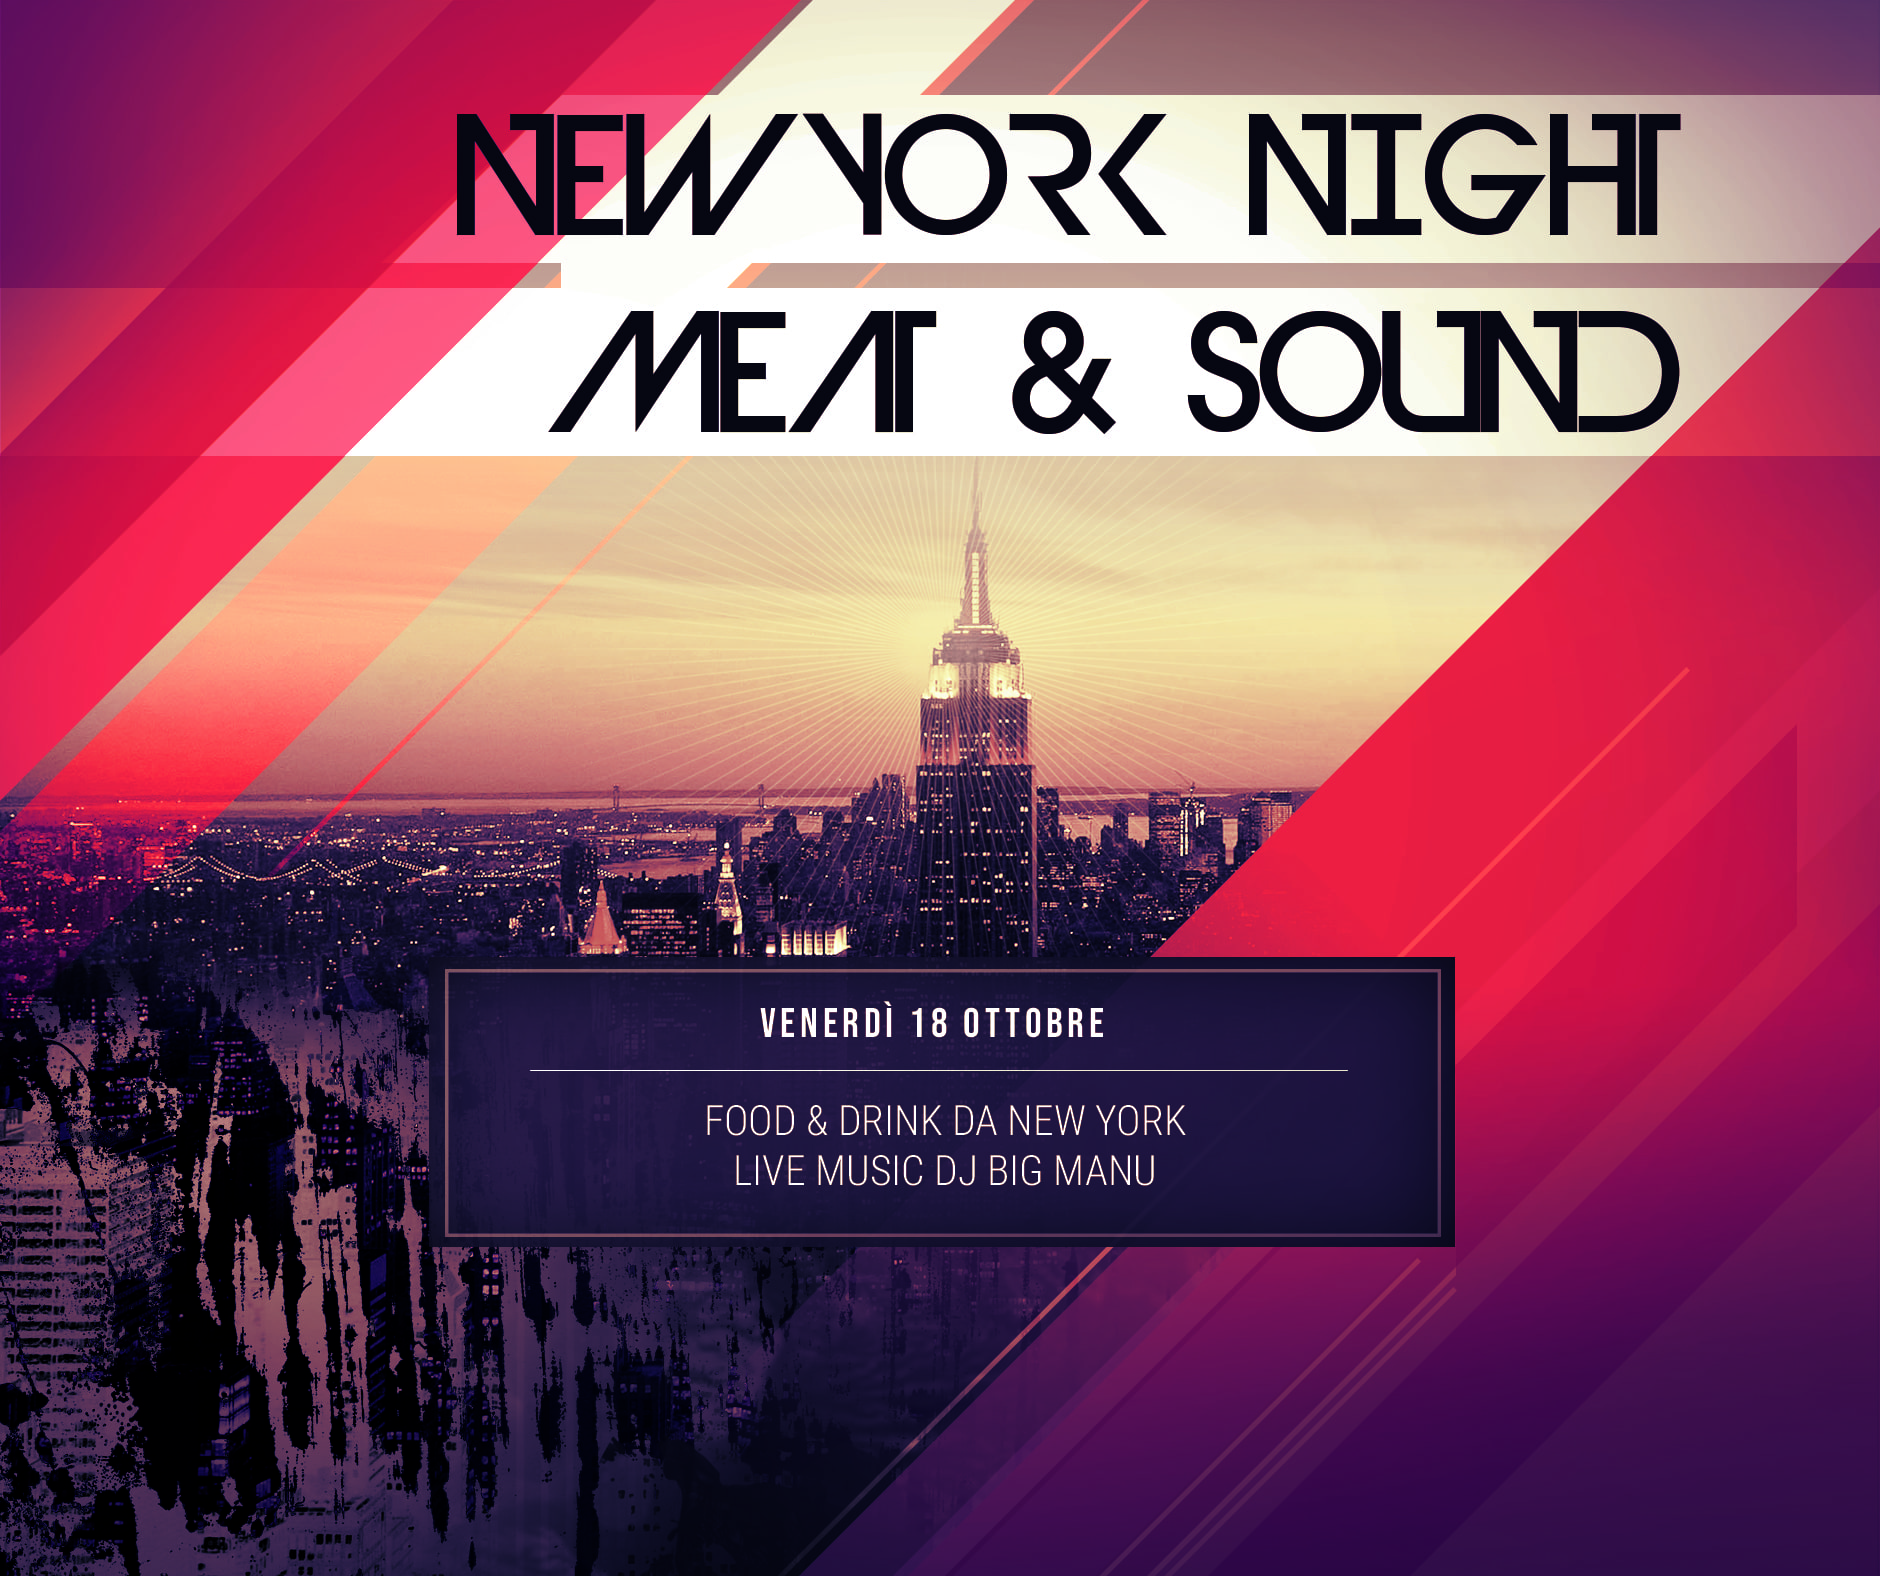 New York Night – Meat and Sound